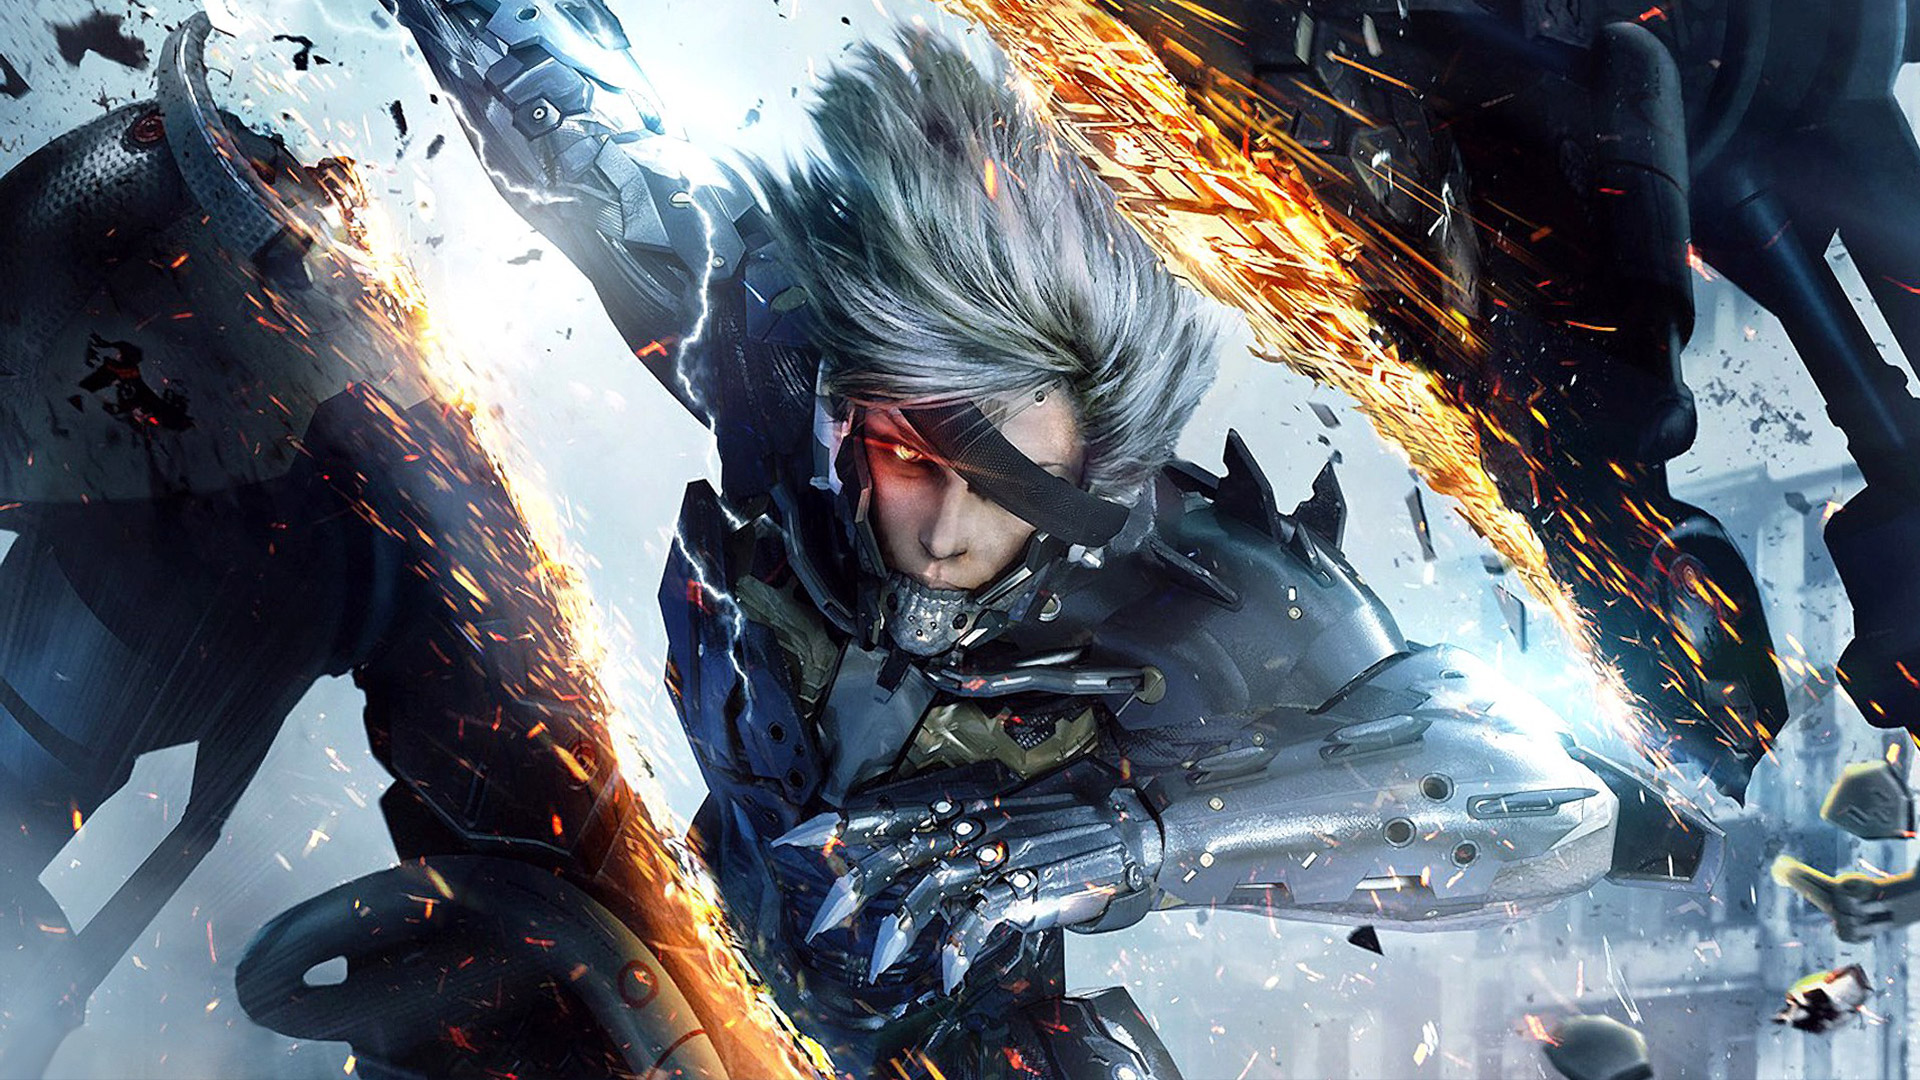 'Metal Gear Rising: Revengeance' Preview: A Bombastic Departure